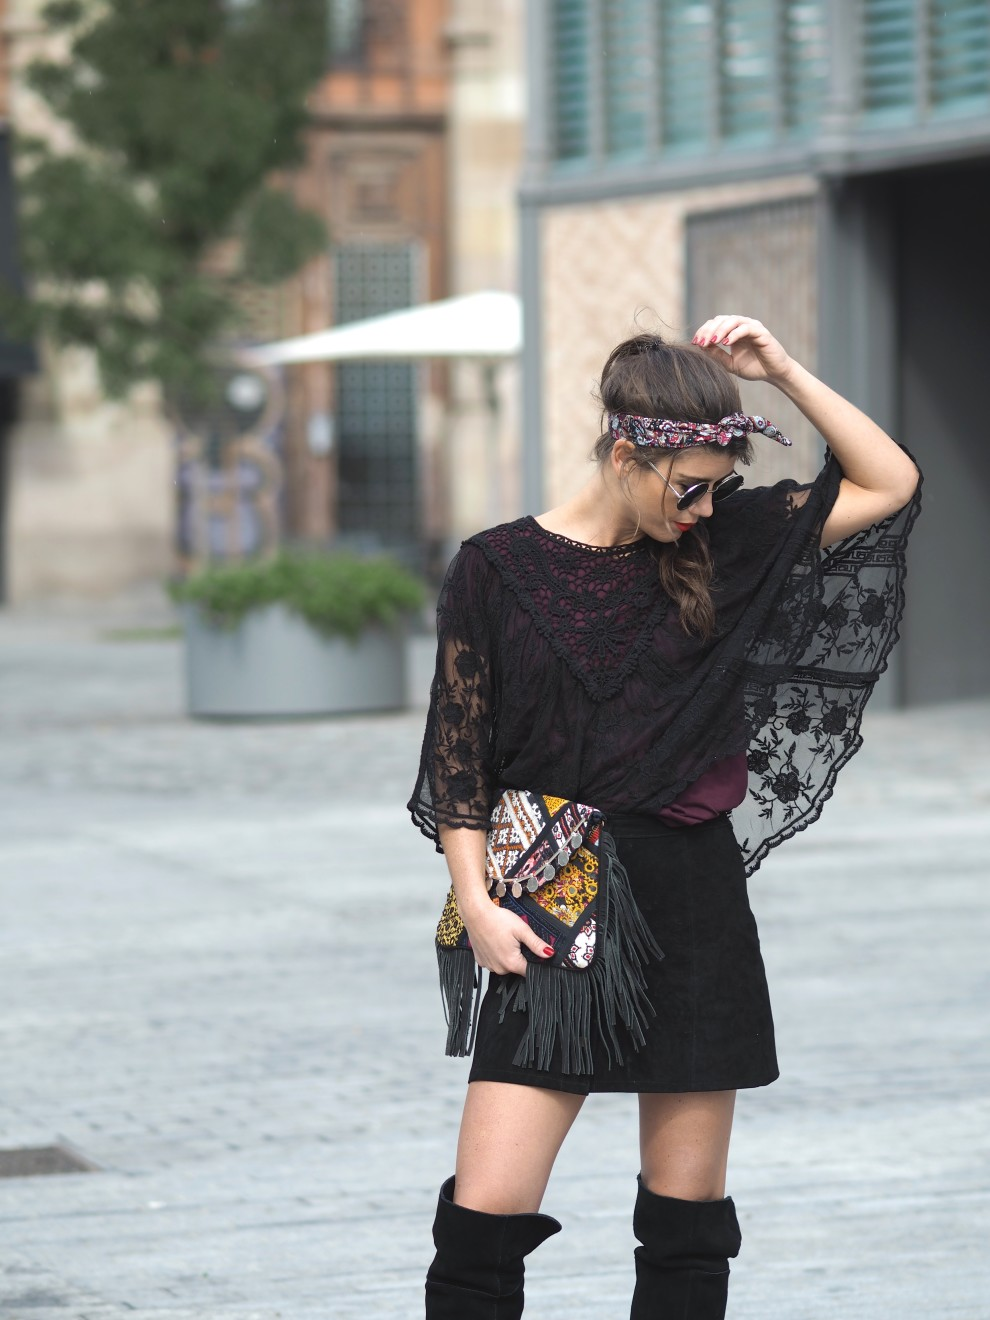 LACE TOP, LOLA NOMADA, HIGH KNEES BOOTS OOTD FASHIONBLOGGER